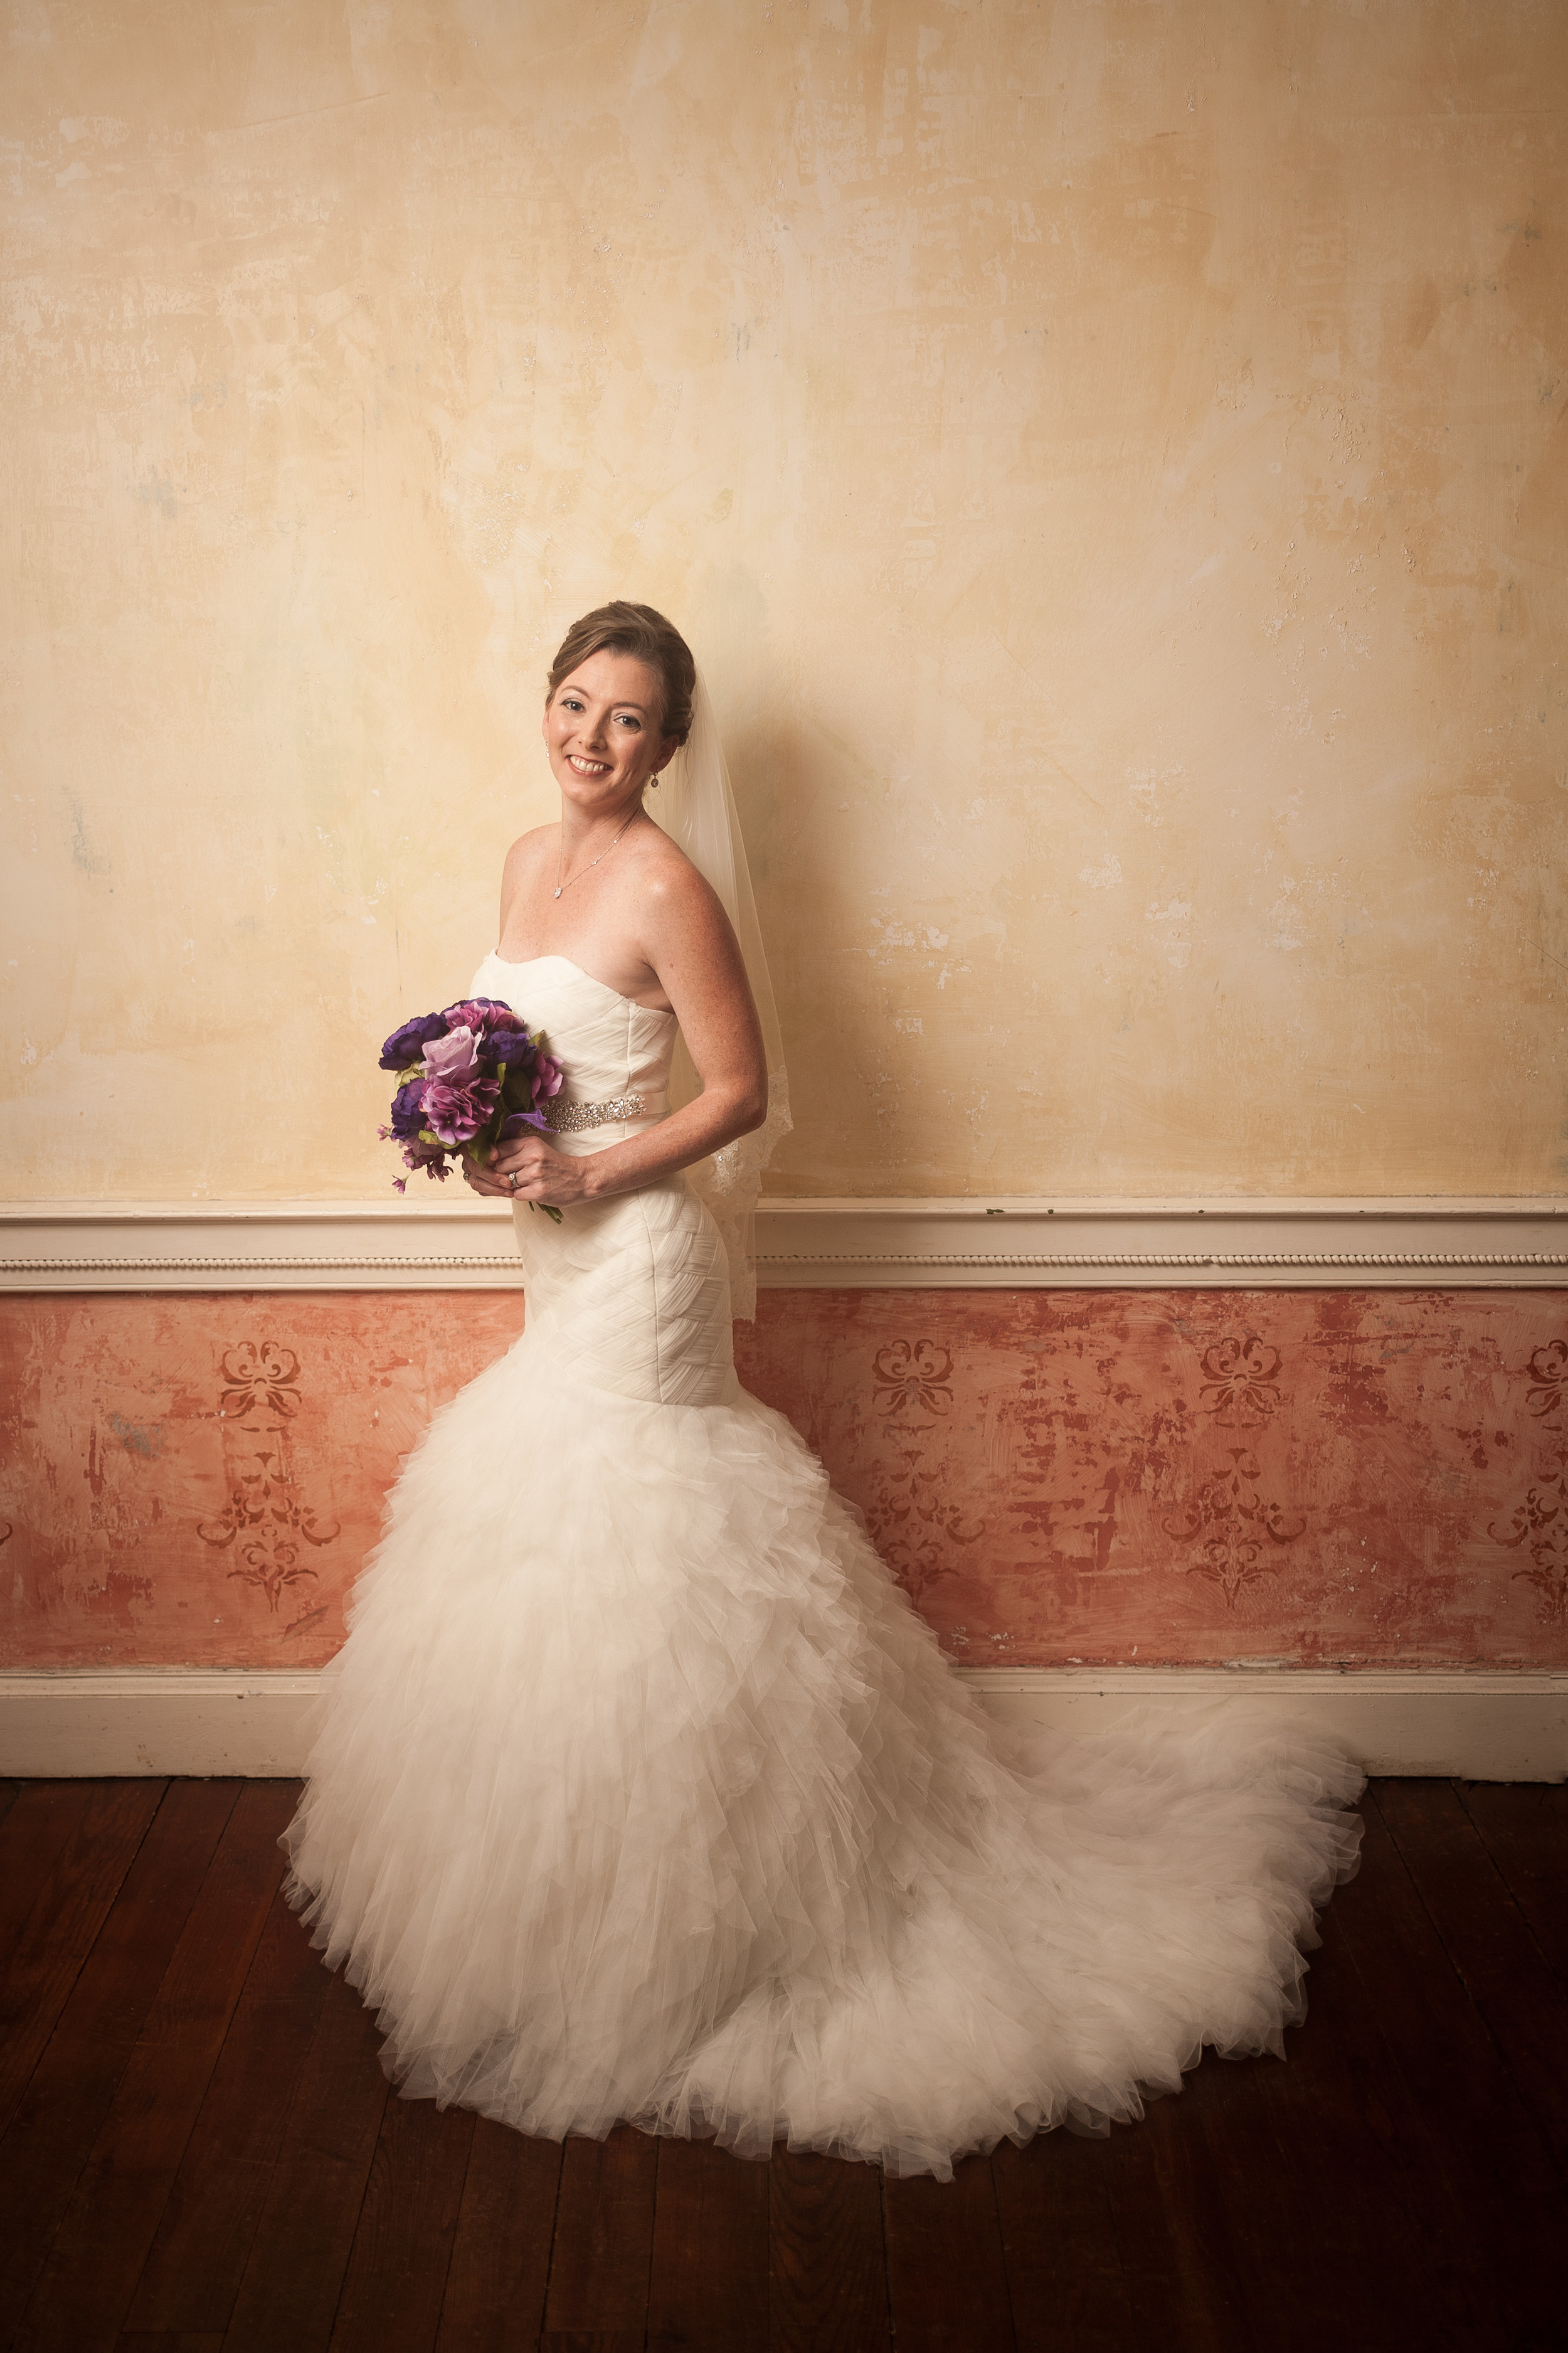 wedding photographer bent-lee carr bride in front of amazing textured wall at the kyle house in fincastle virginia